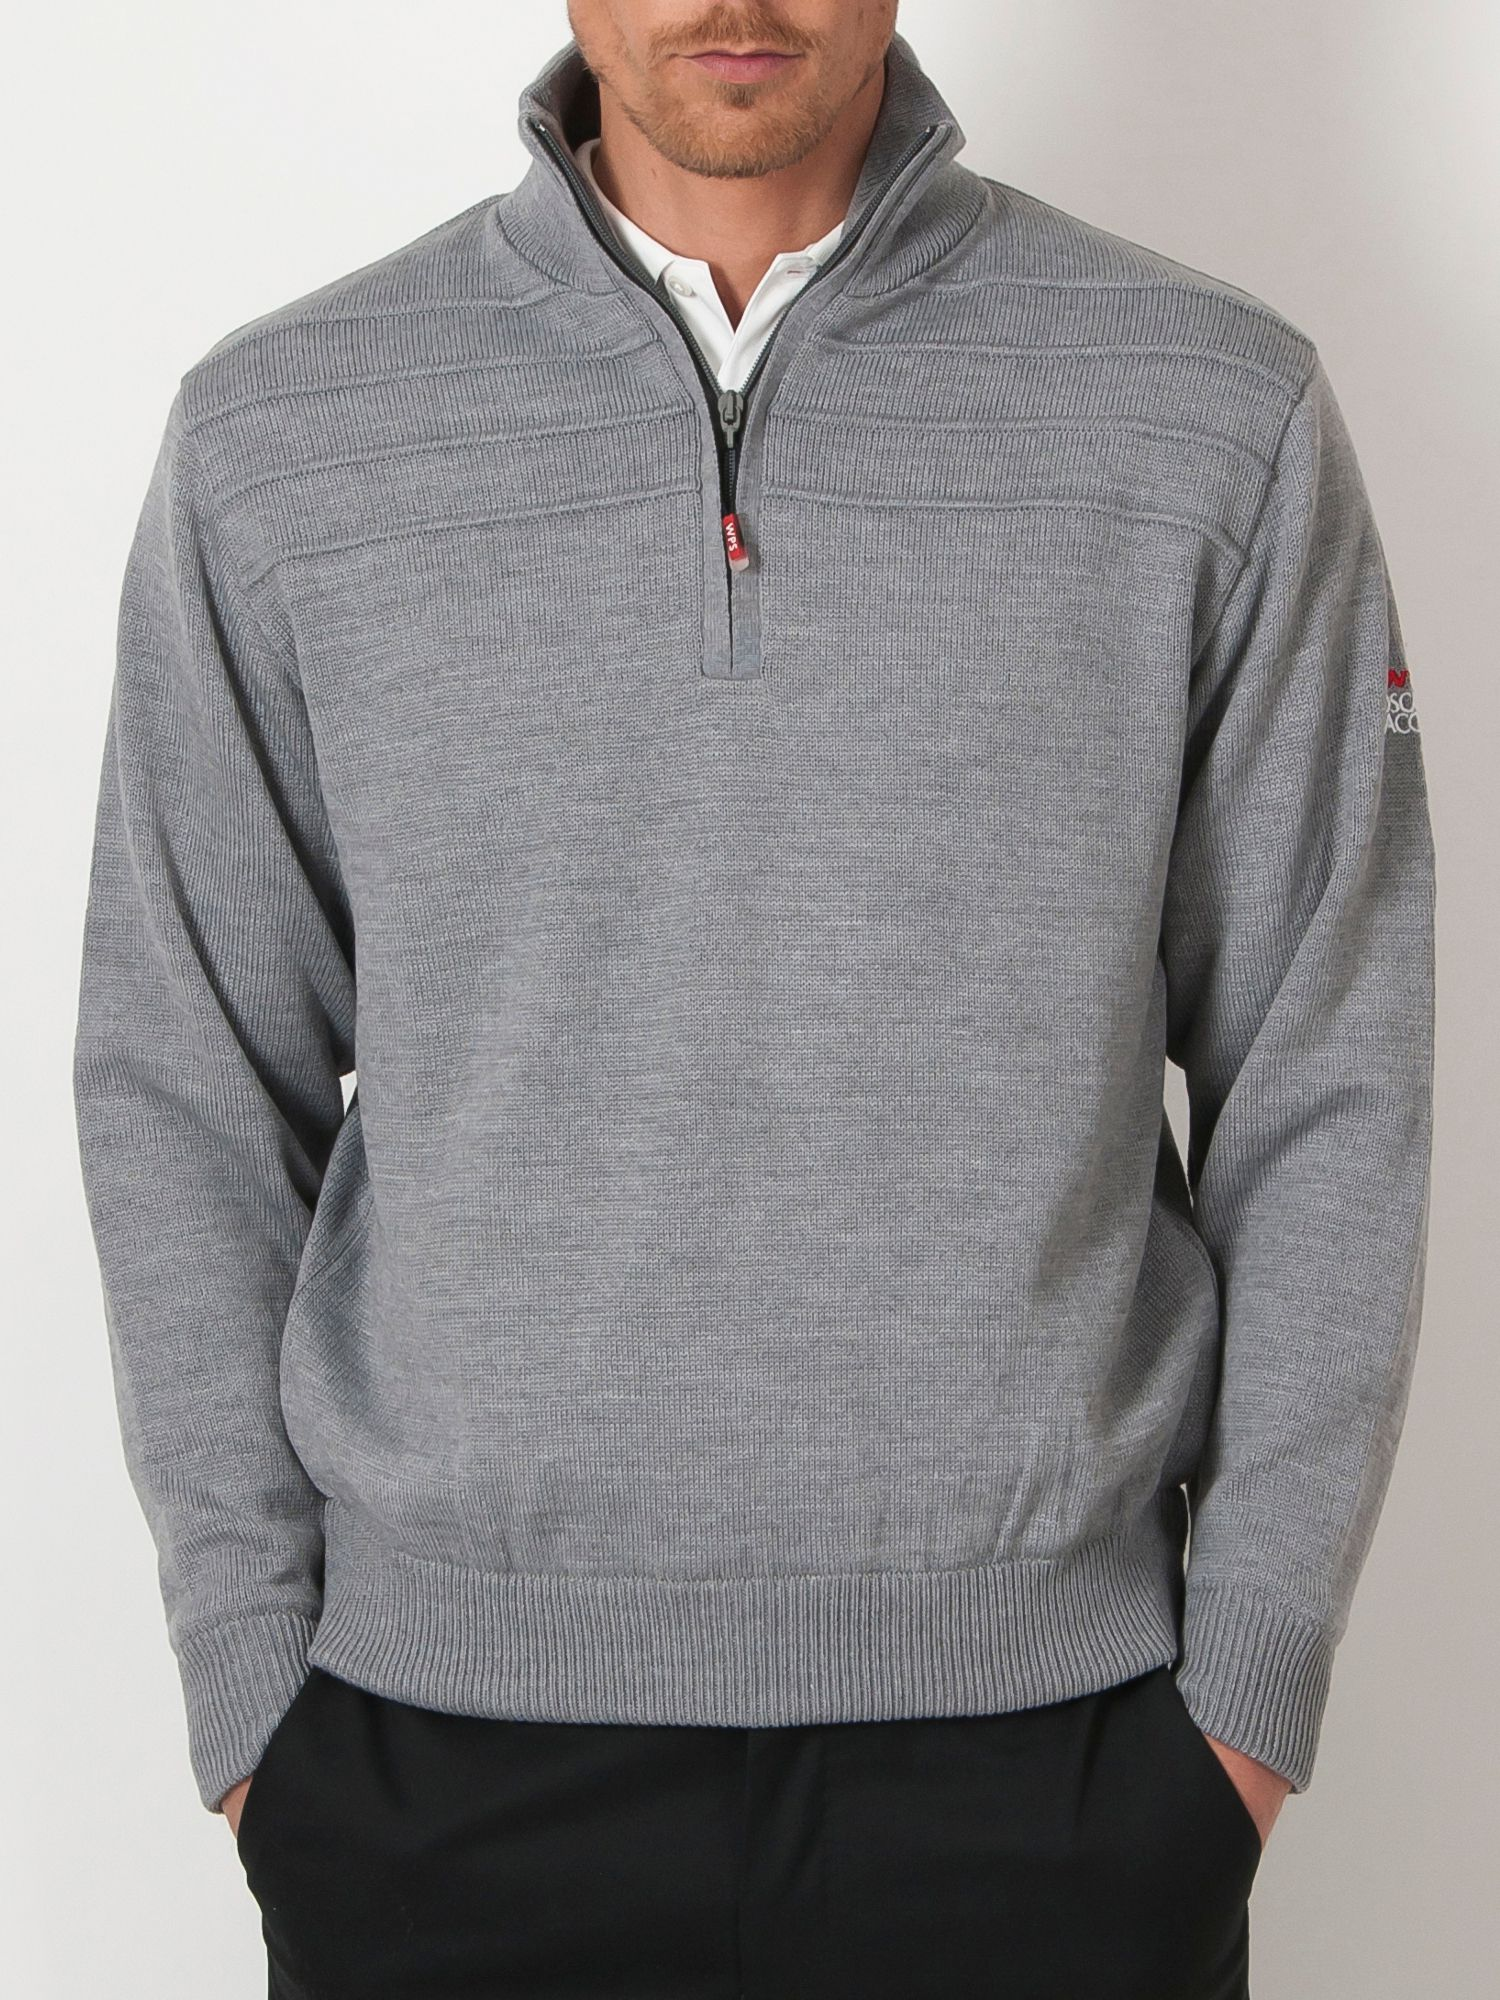 Orson lined sweater